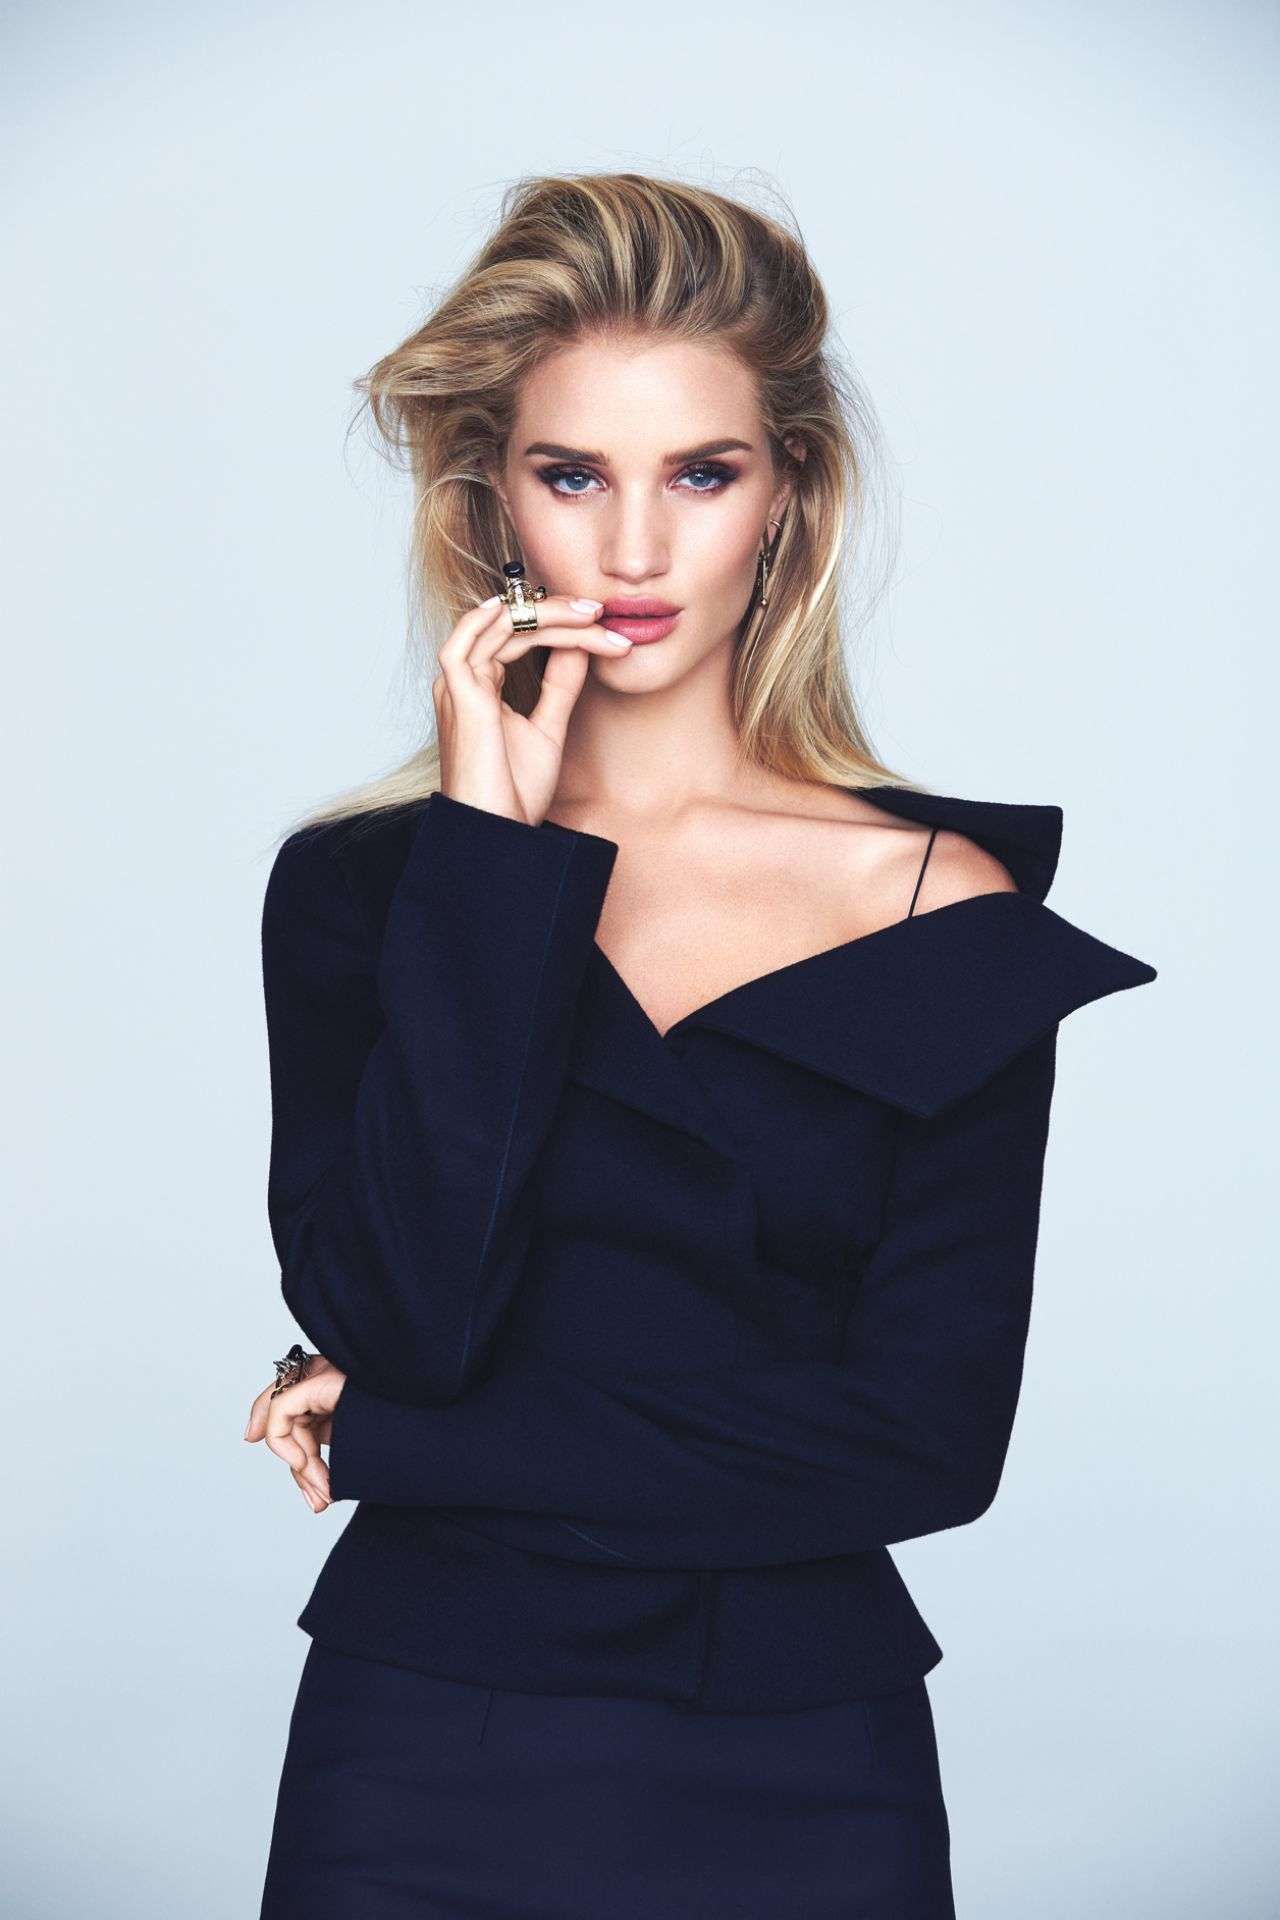 Rosie Huntington-Whiteley - Photoshoot for Elle Brazil ... Rosie Huntington Whiteley